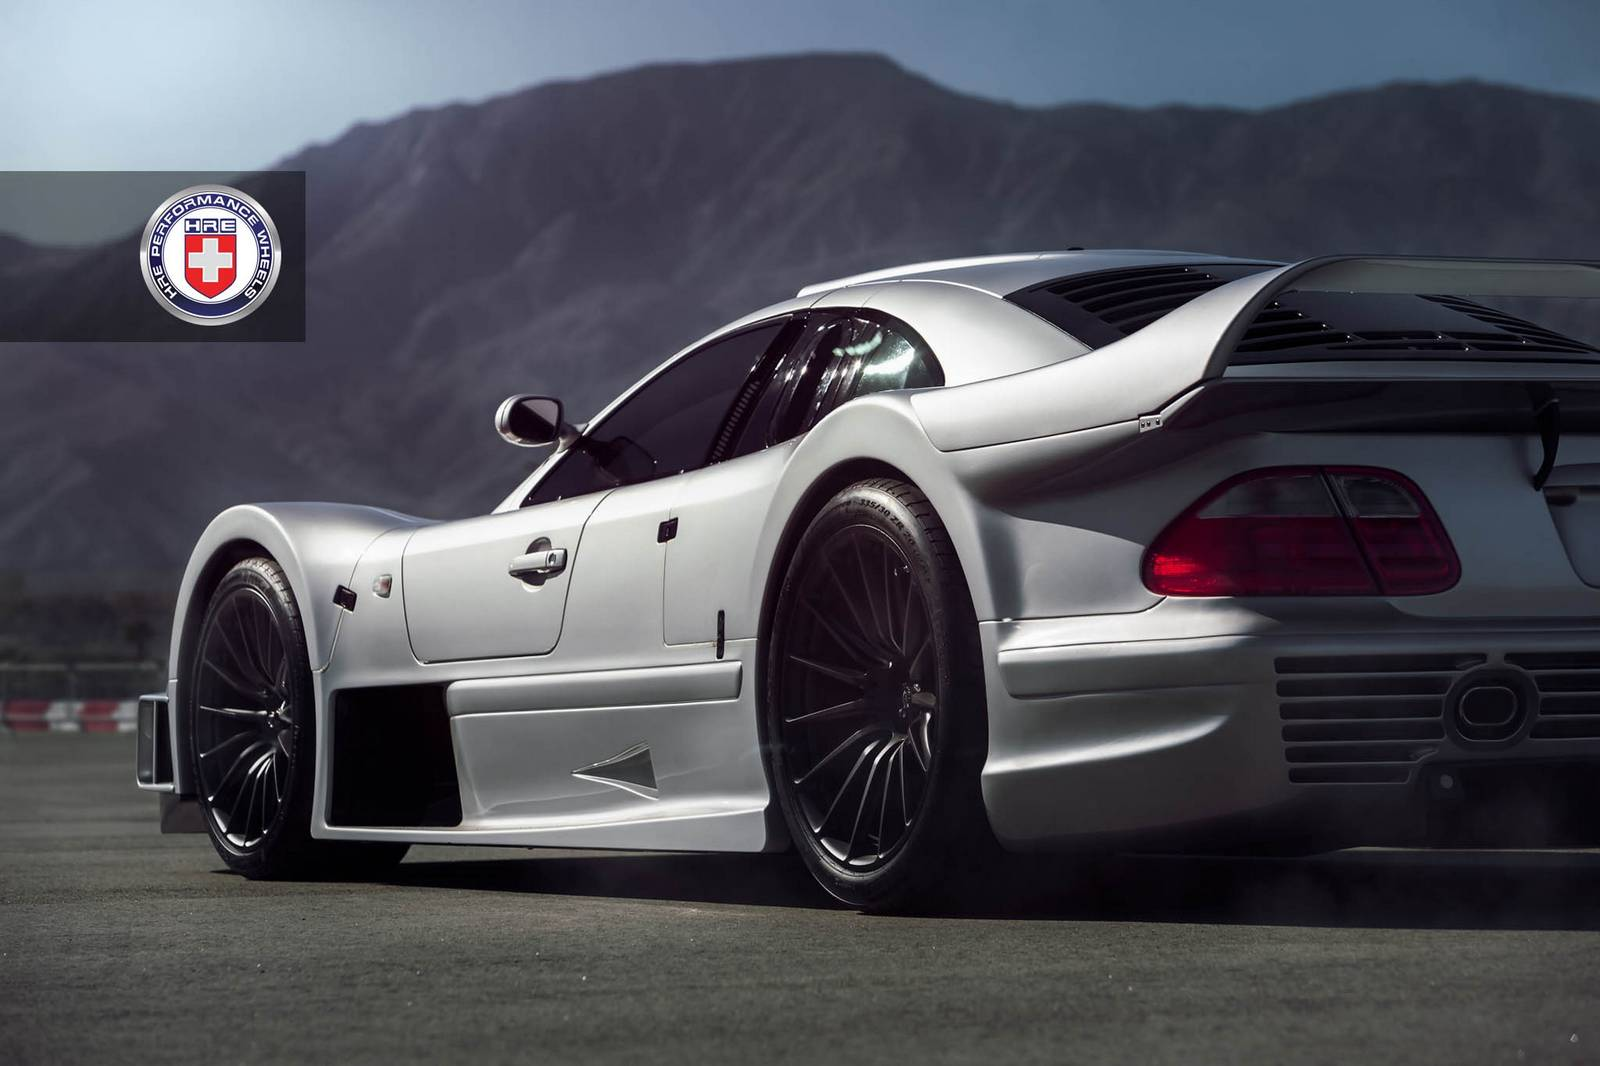 Stunning mercedes benz clk gtr with satin black hre wheels for Mercedes benz wheel